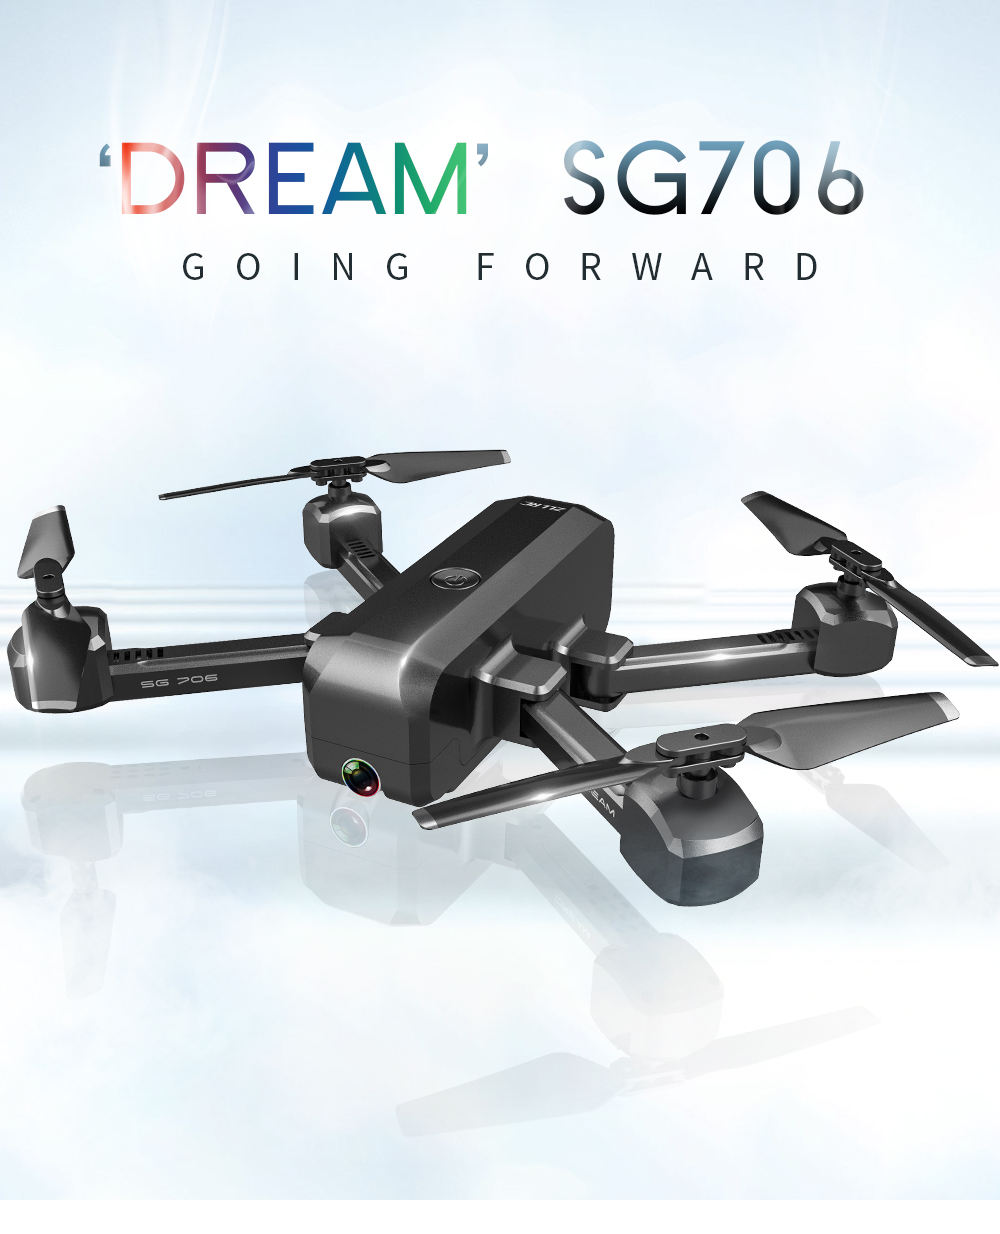 China Factory Outlet SG706 4K HD Aerial Camera Smart follow Rc professional drone with camera R8 radio + control + toy